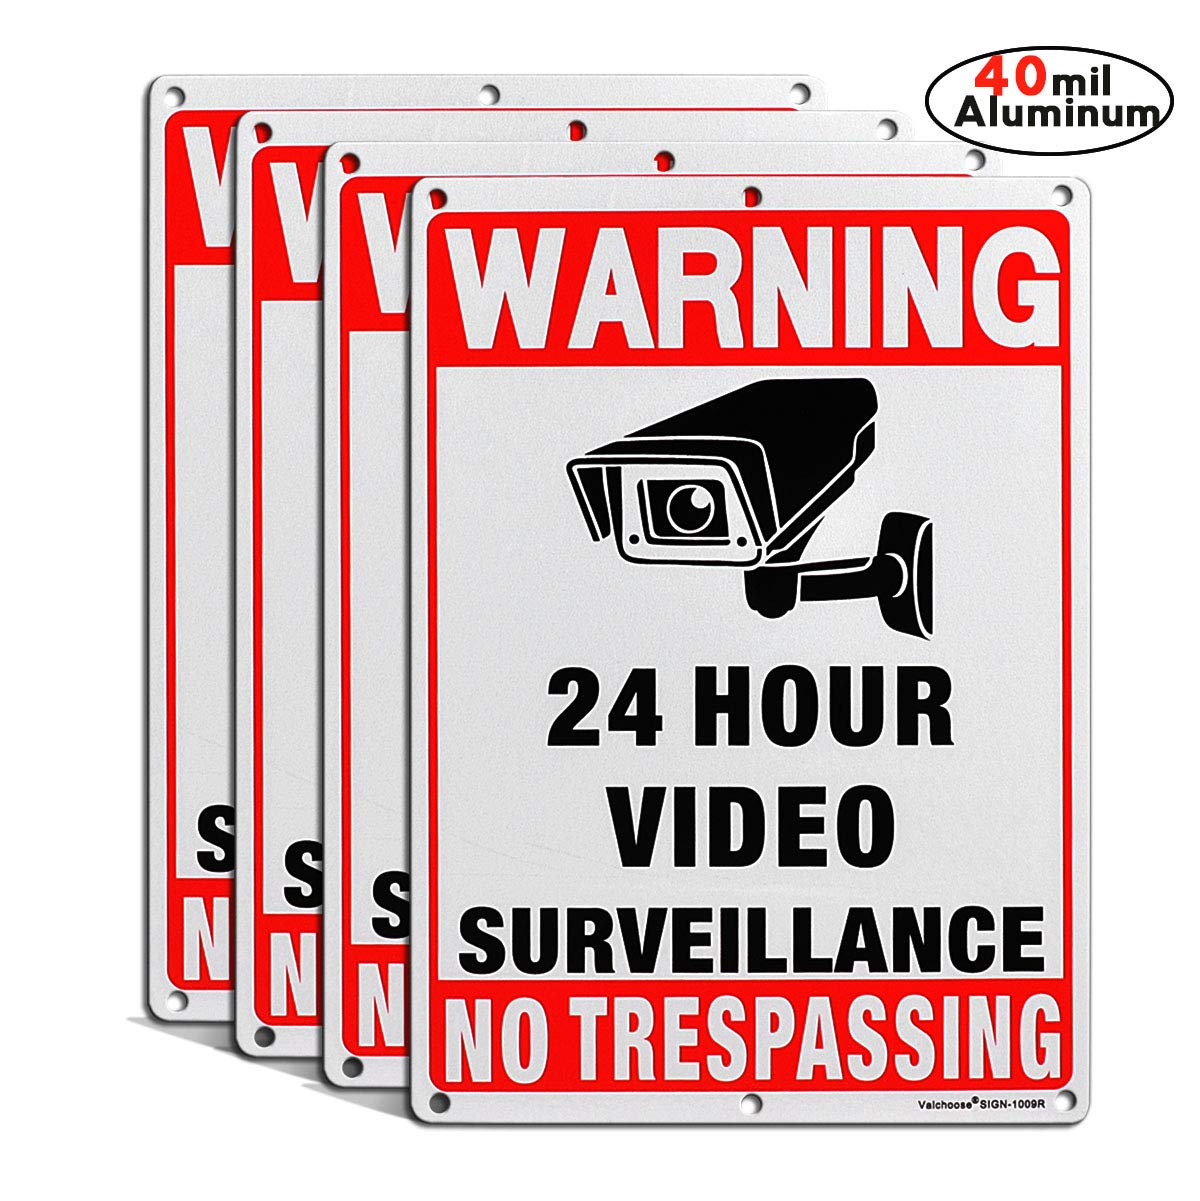 Video Surveillance Signs Outdoor 4PACK Premium, Surveillance Signs 24 Hour Video Clear Letters, 10x7 inches 40 mil Aluminum, UV Protected Reflective Rust Free, Easy to Mount with 6 Holes by Valchoose